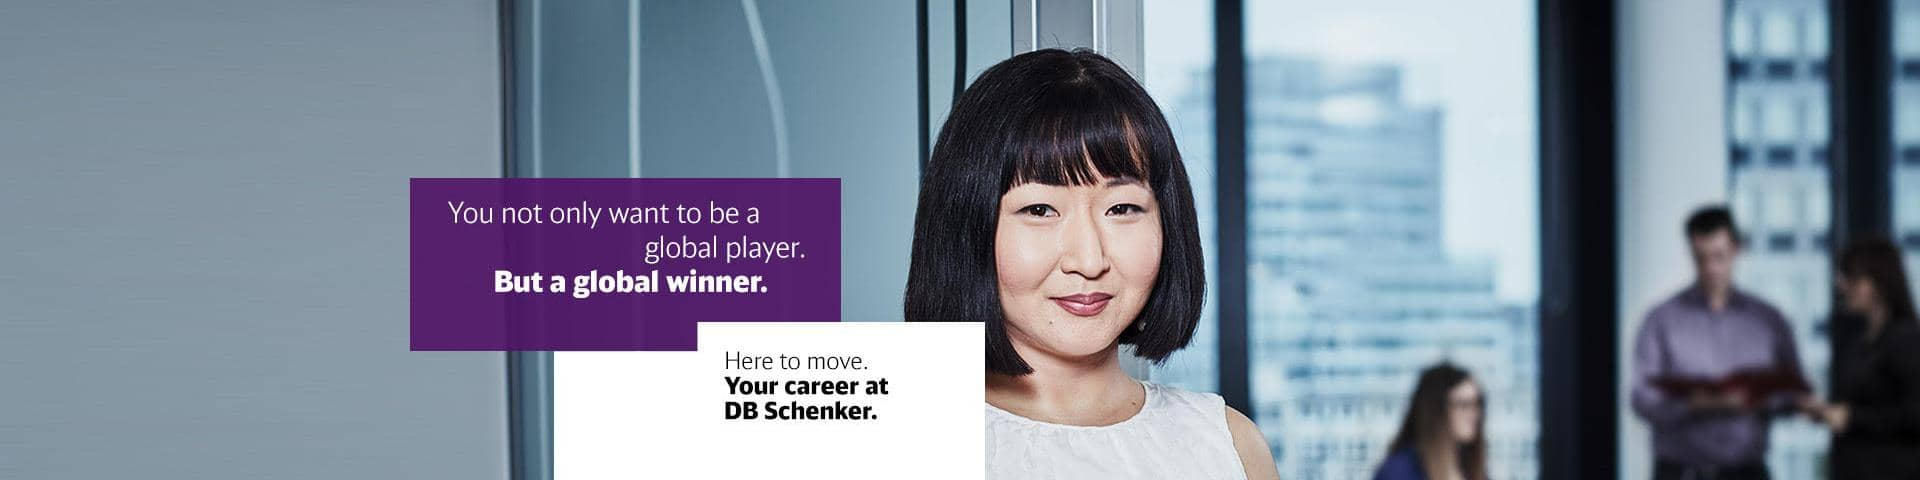 Career at DB Schenker